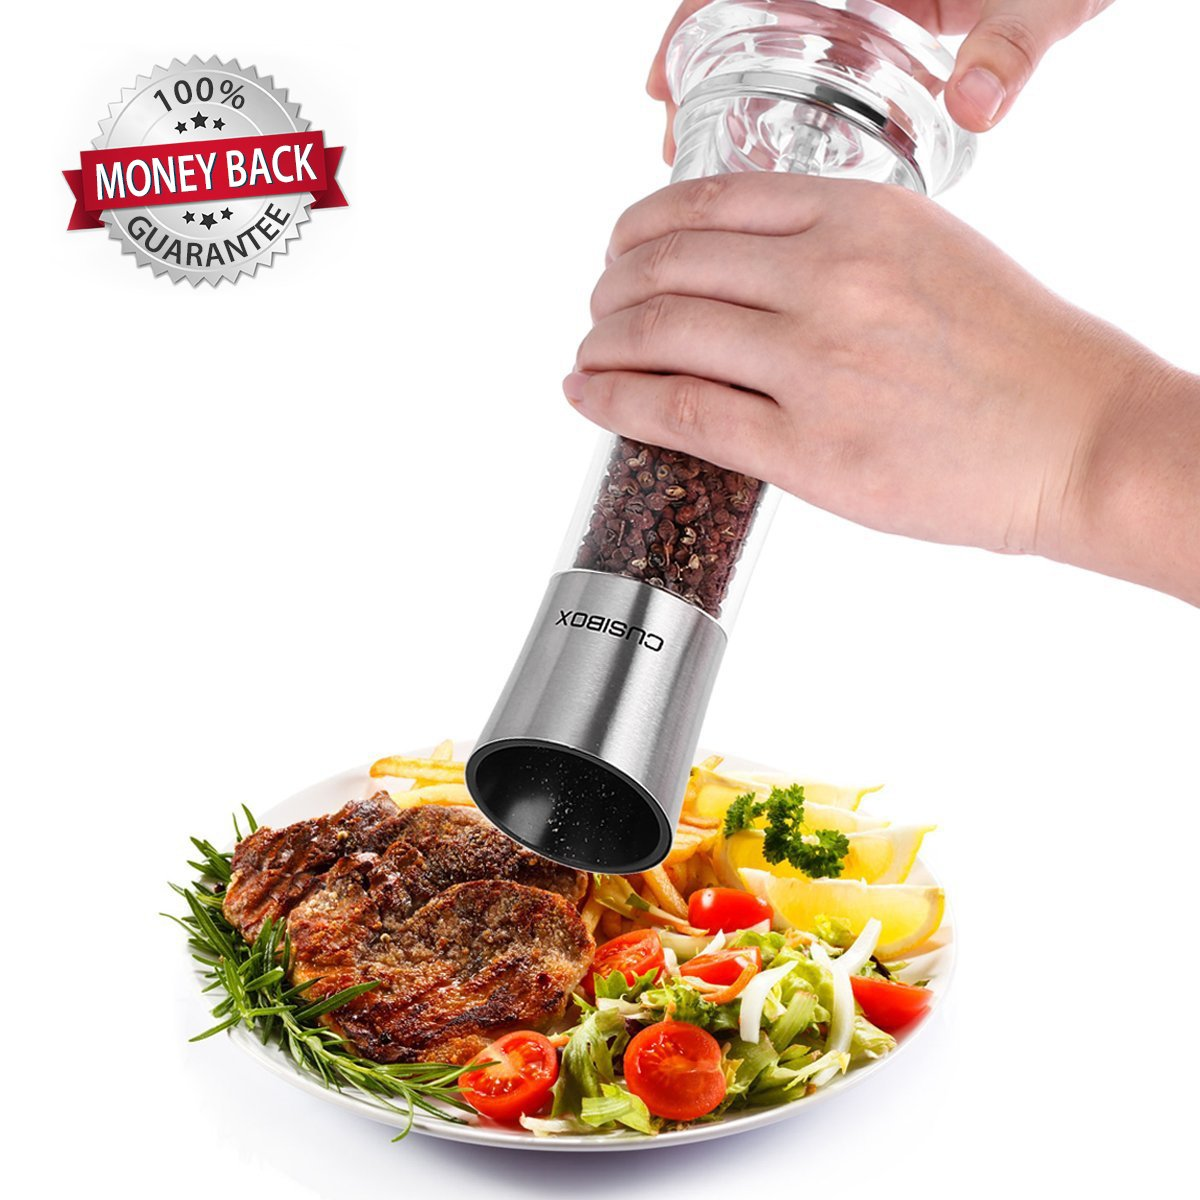 Manual Salt or Pepper Grinder, CUSIBOX Stainless Steel Salt and Pepper Mill Grinder Shaker with Adjustable Coarseness